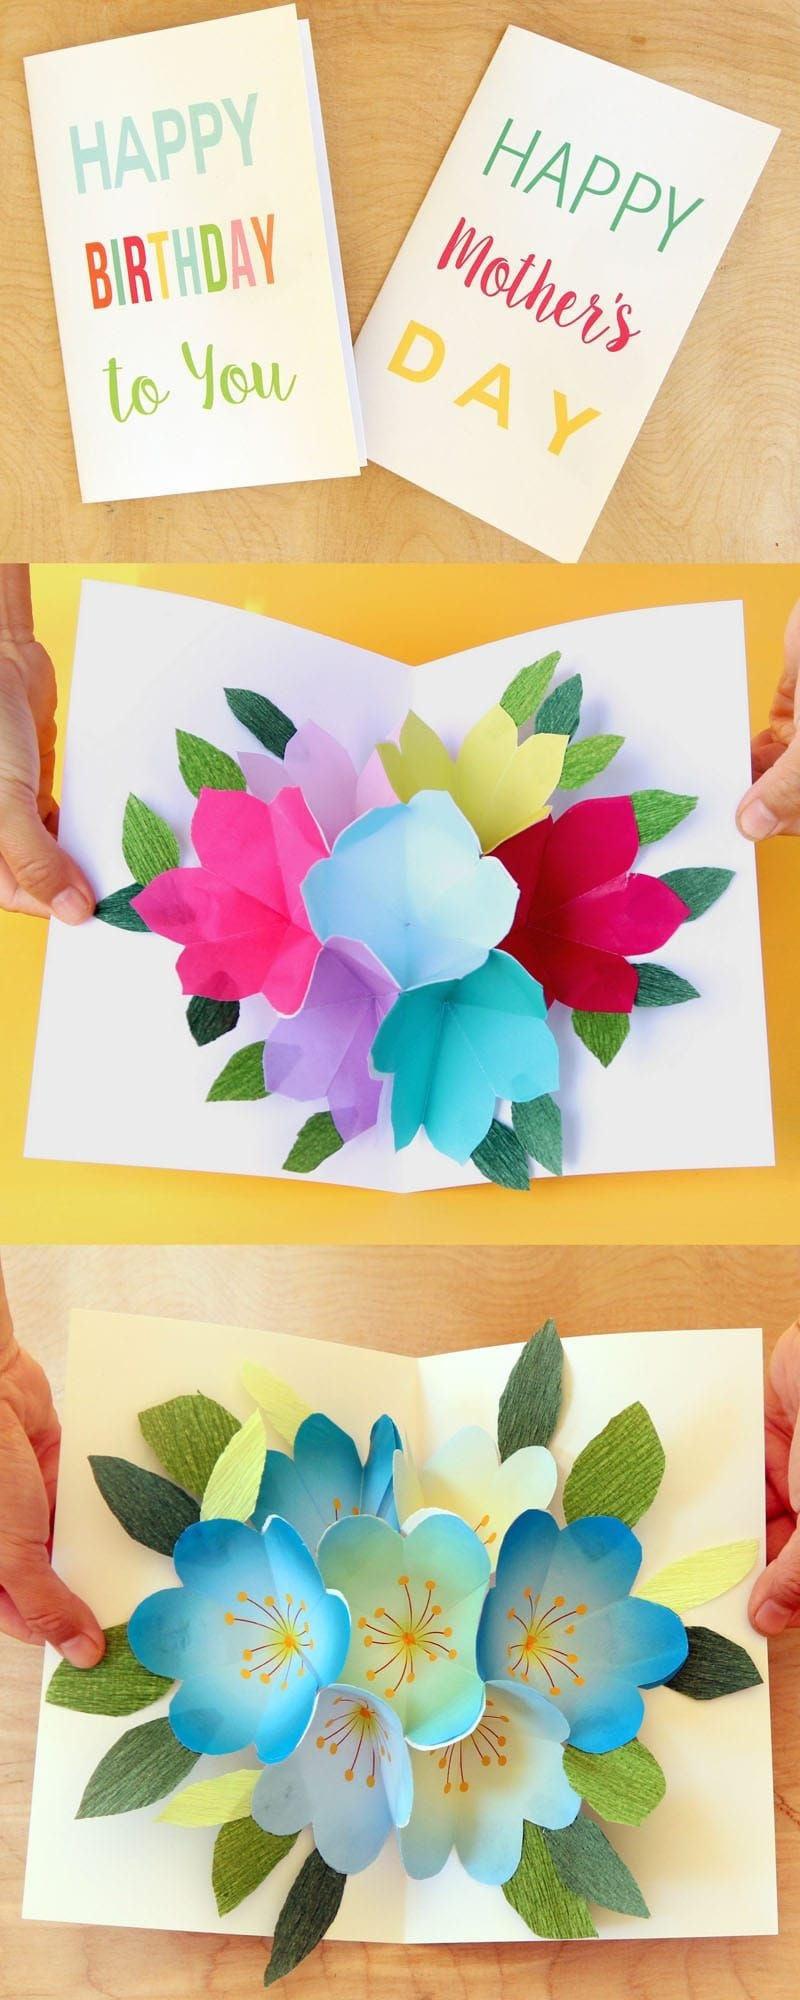 Free Printable Happy Birthday Card With Pop Up Bouquet   Printables - Free Printable Pop Up Birthday Card Templates